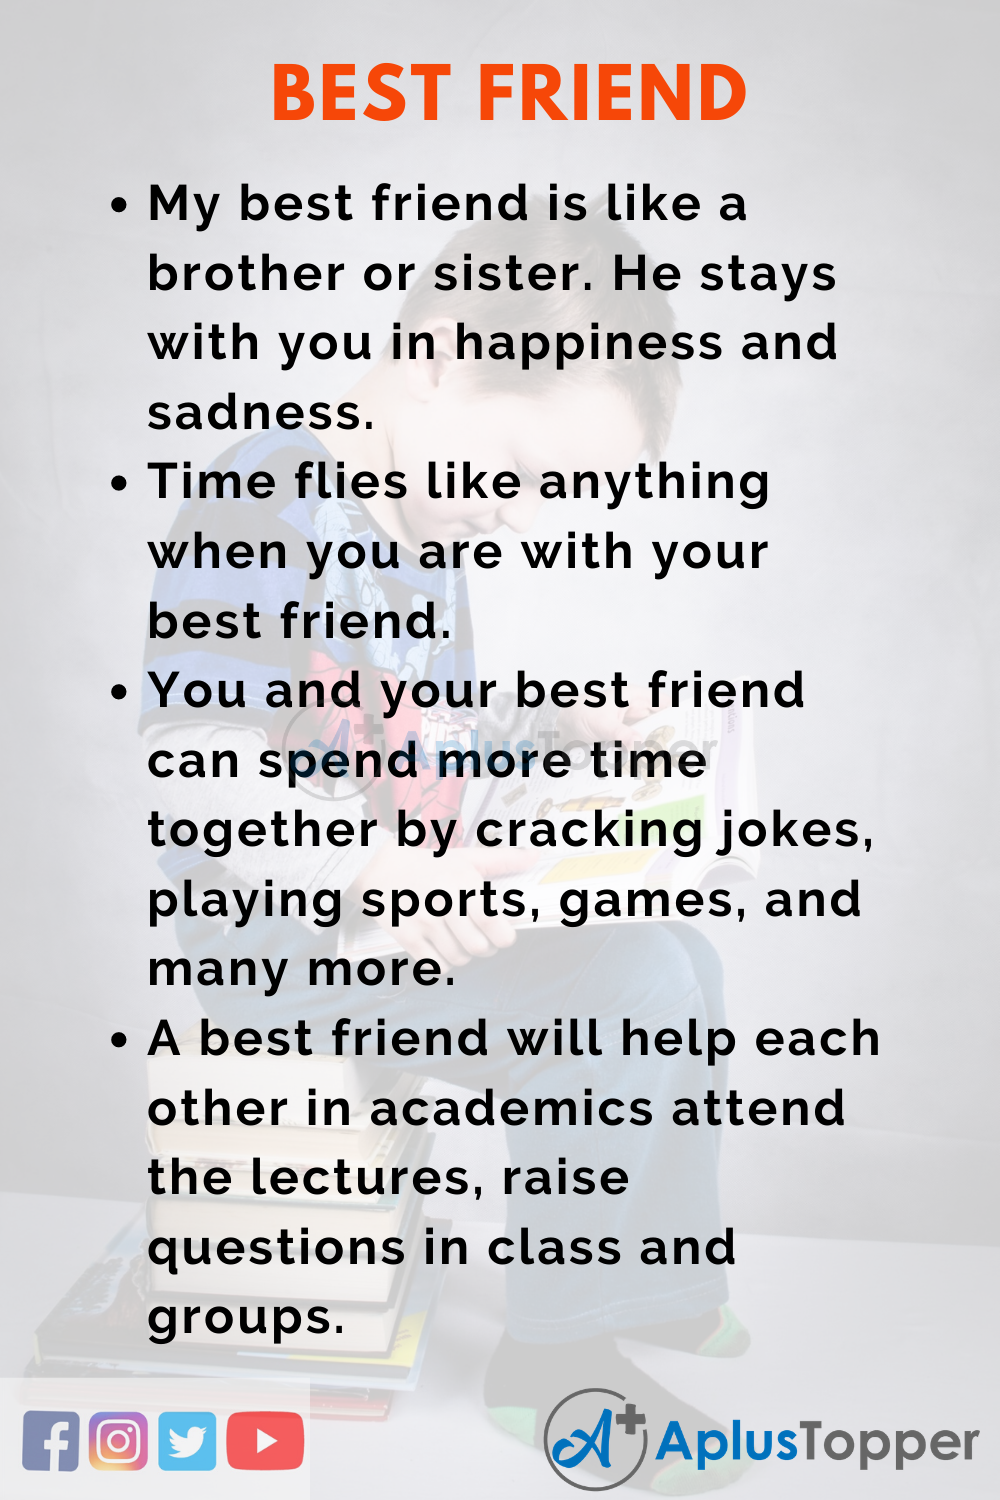 10 Lines on Best Friend for Higher Class Students